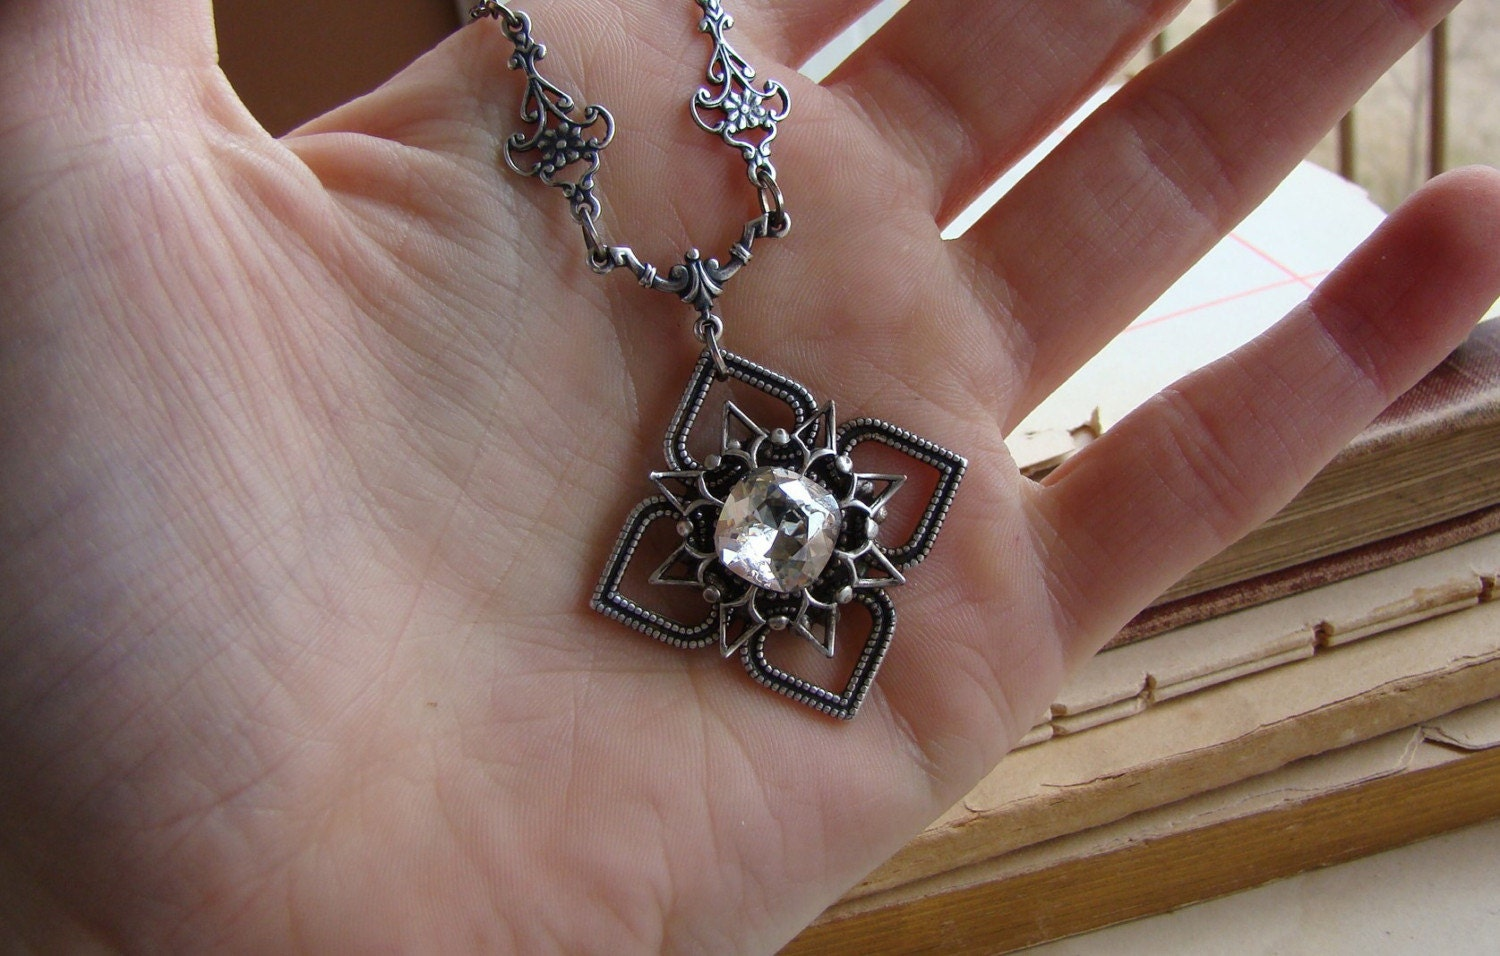 Stardust - Silver Swarovski Jewel and Filigree Victorian Necklace